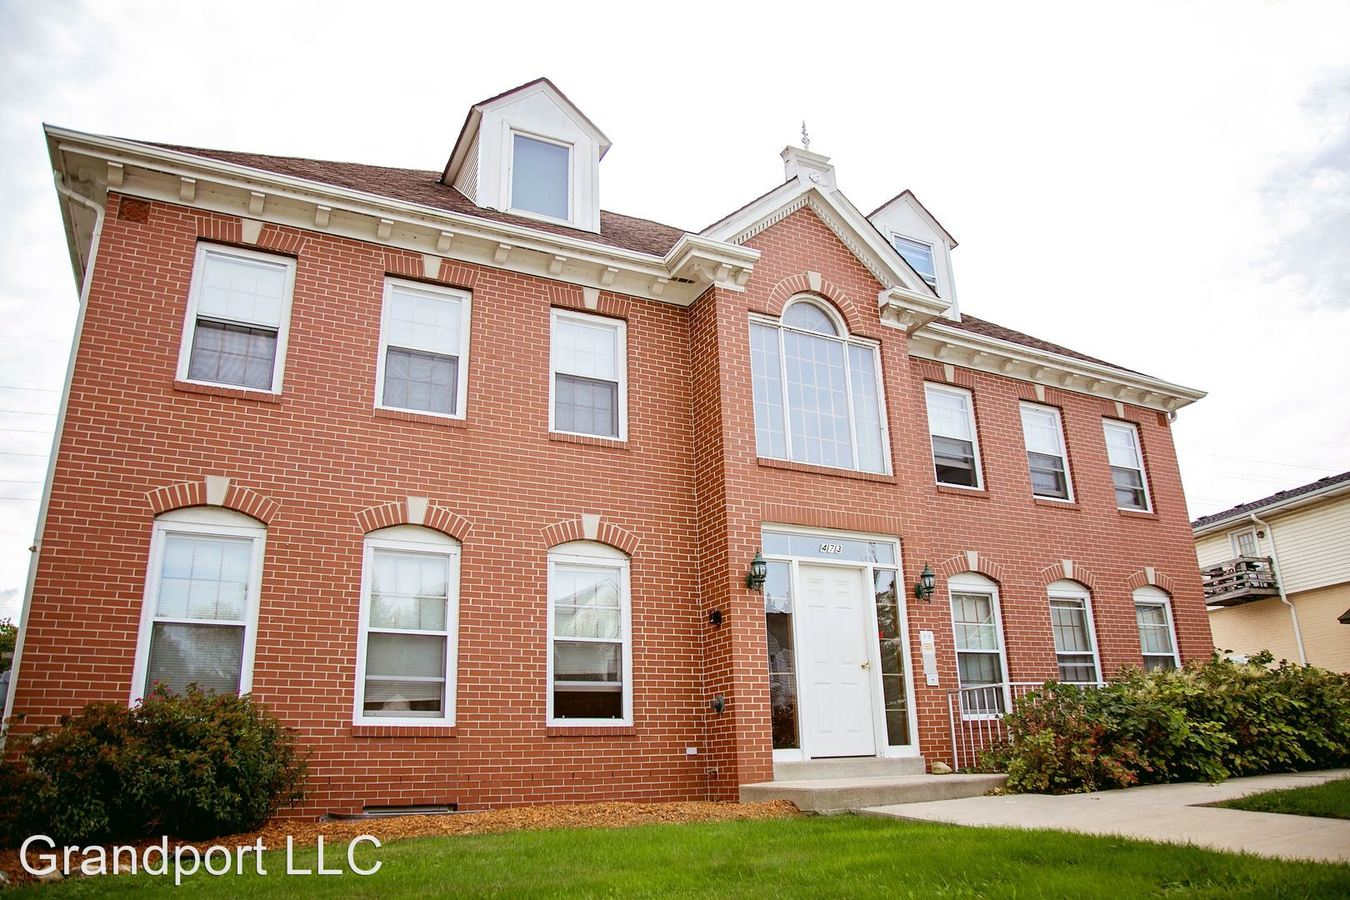 2 Bedrooms 1 Bathroom Apartment for rent at 465 - 473 W Grand Ave in Port Washington, WI